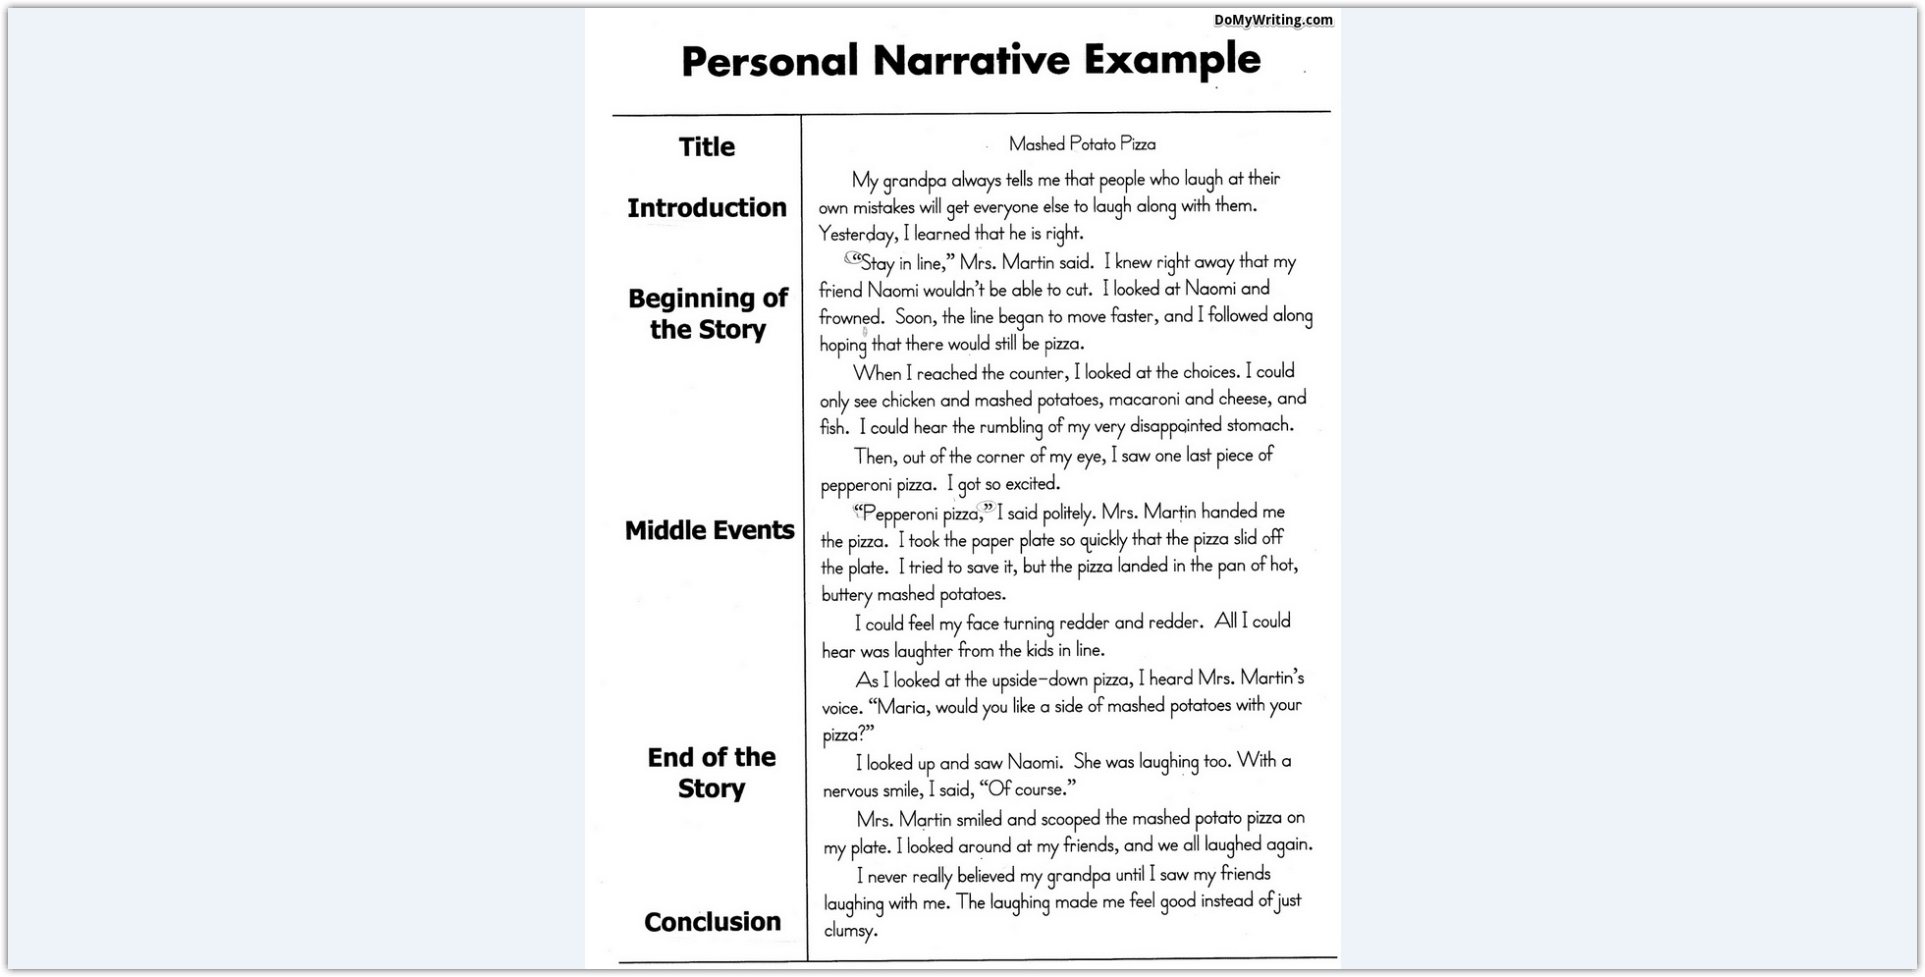 002 Narrative Essay Exceptional Rubric Graphic Organizer Outline Full